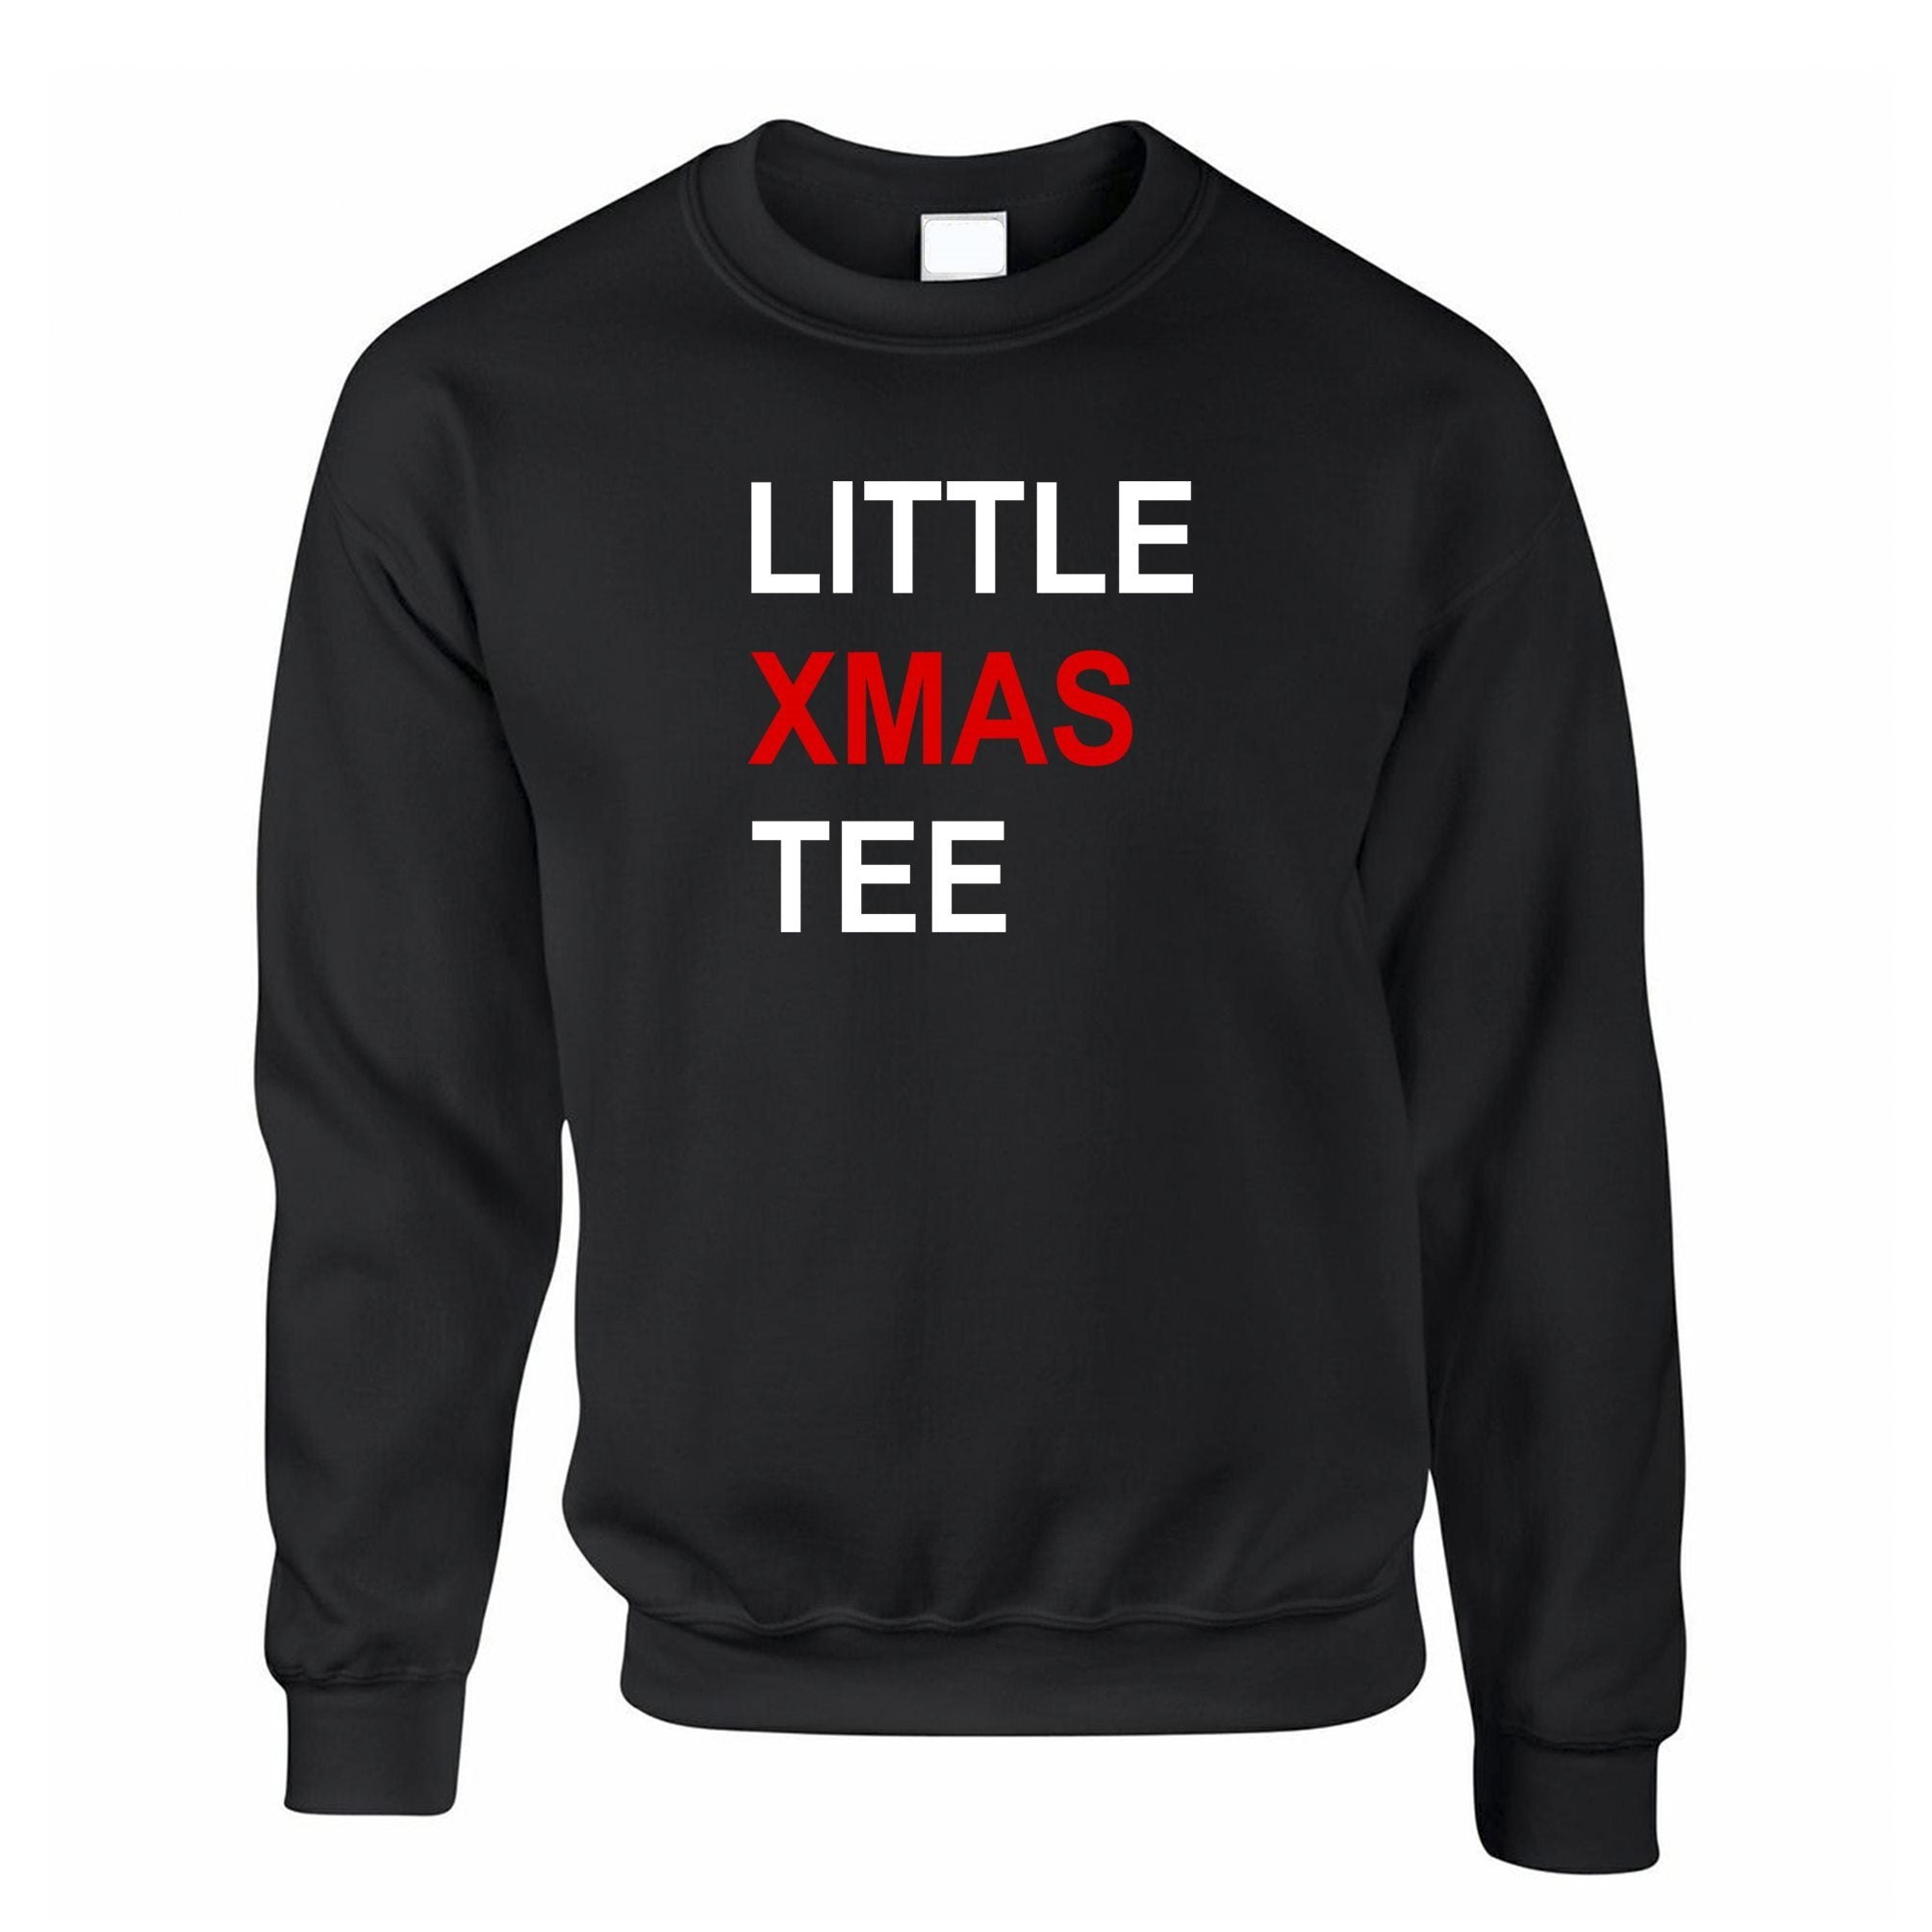 Novelty Christmas Jumper Little Xmas Tee Pun Sweatshirt Sweater